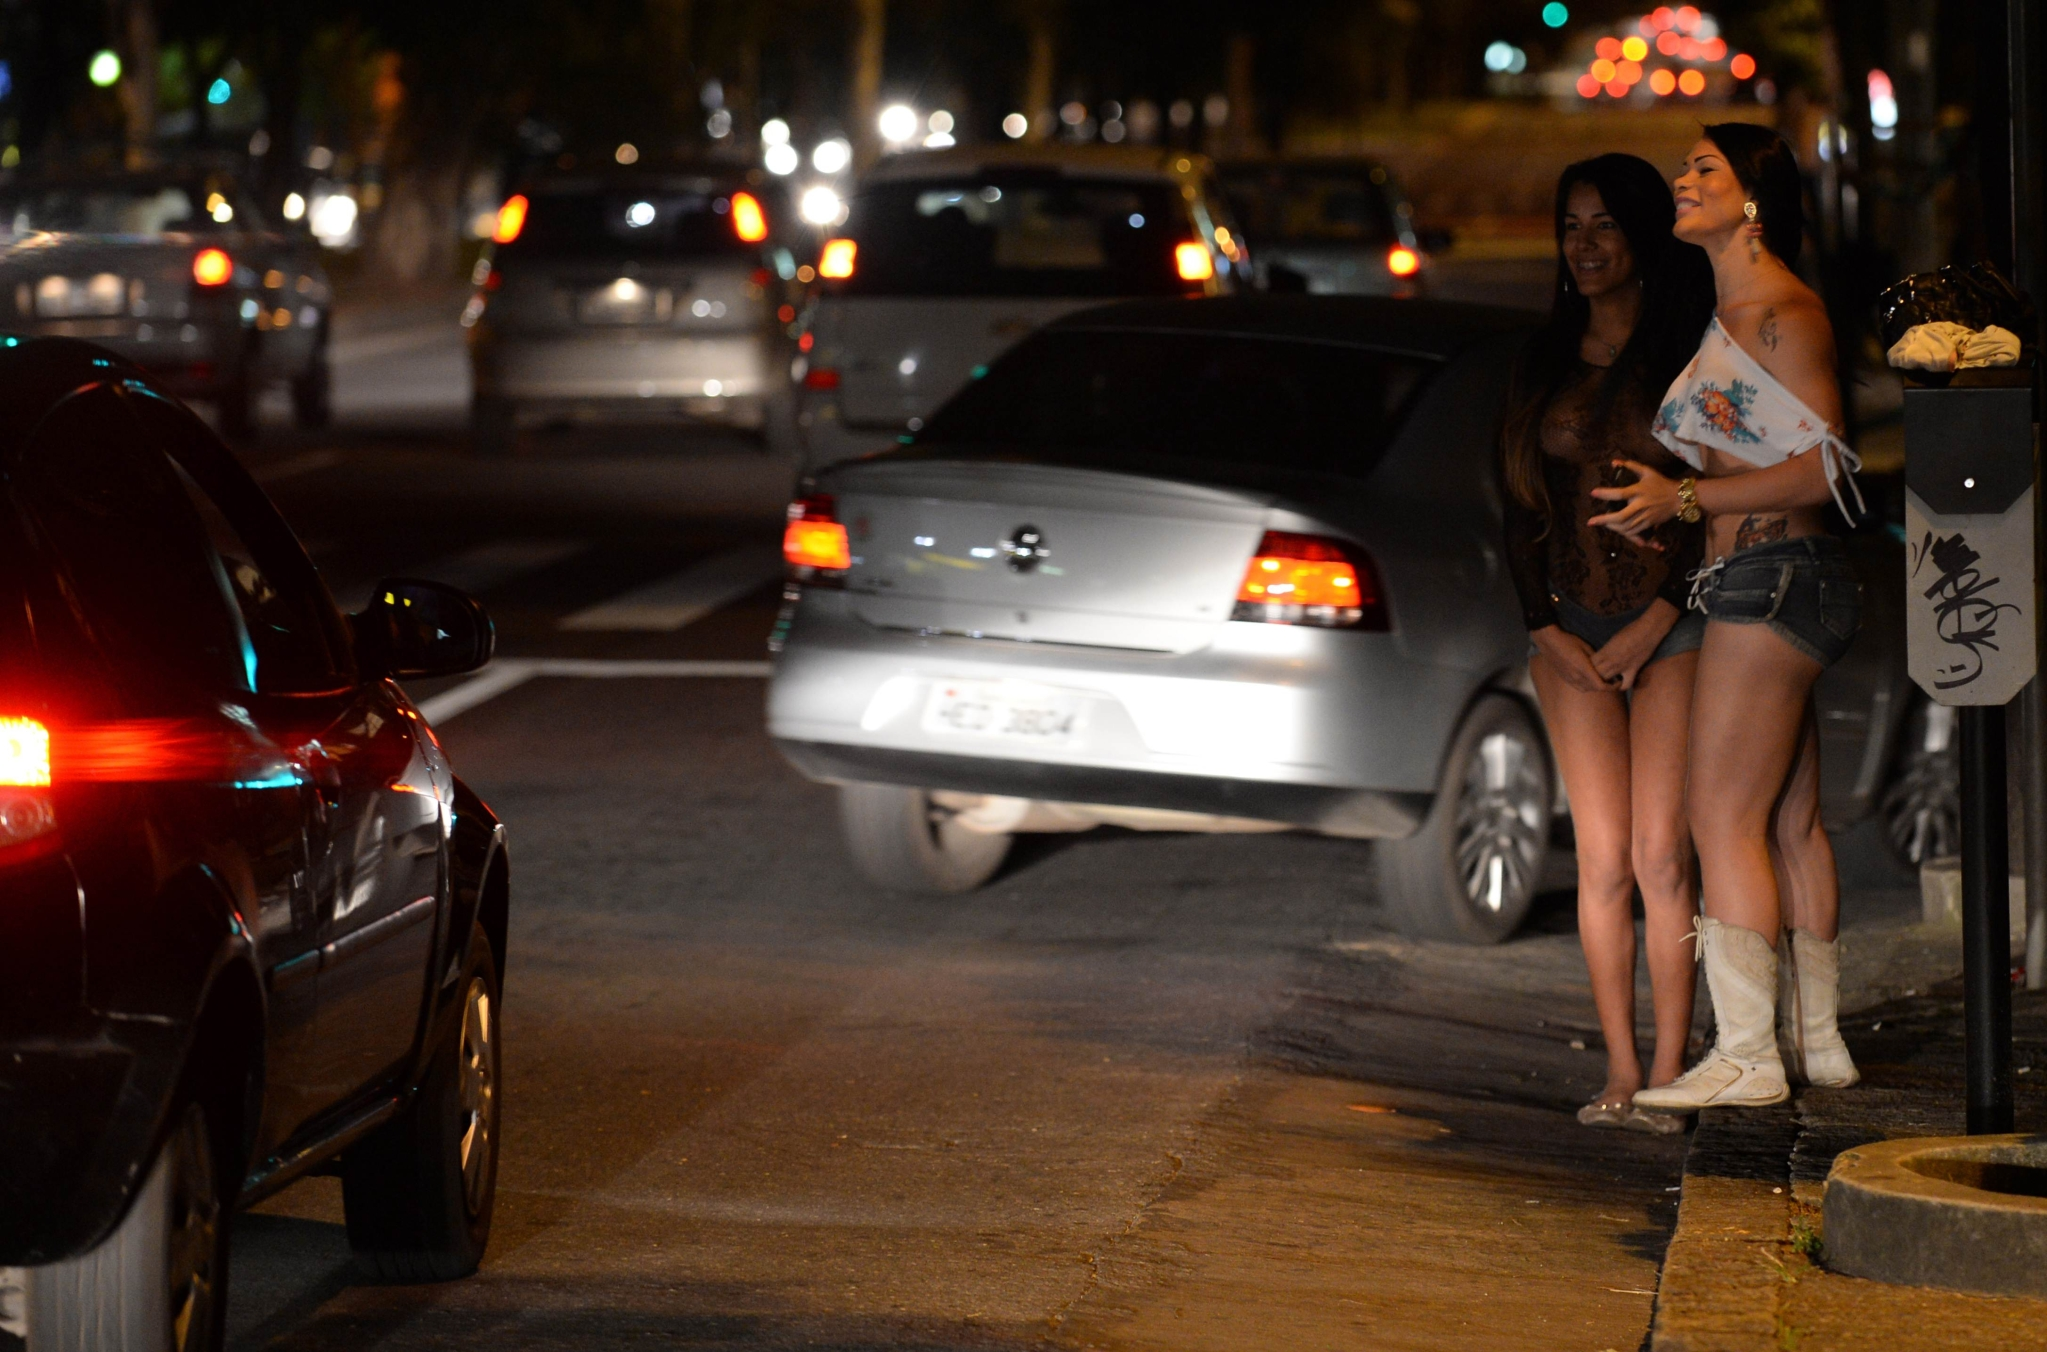 Is prostitution legal in doha qatar